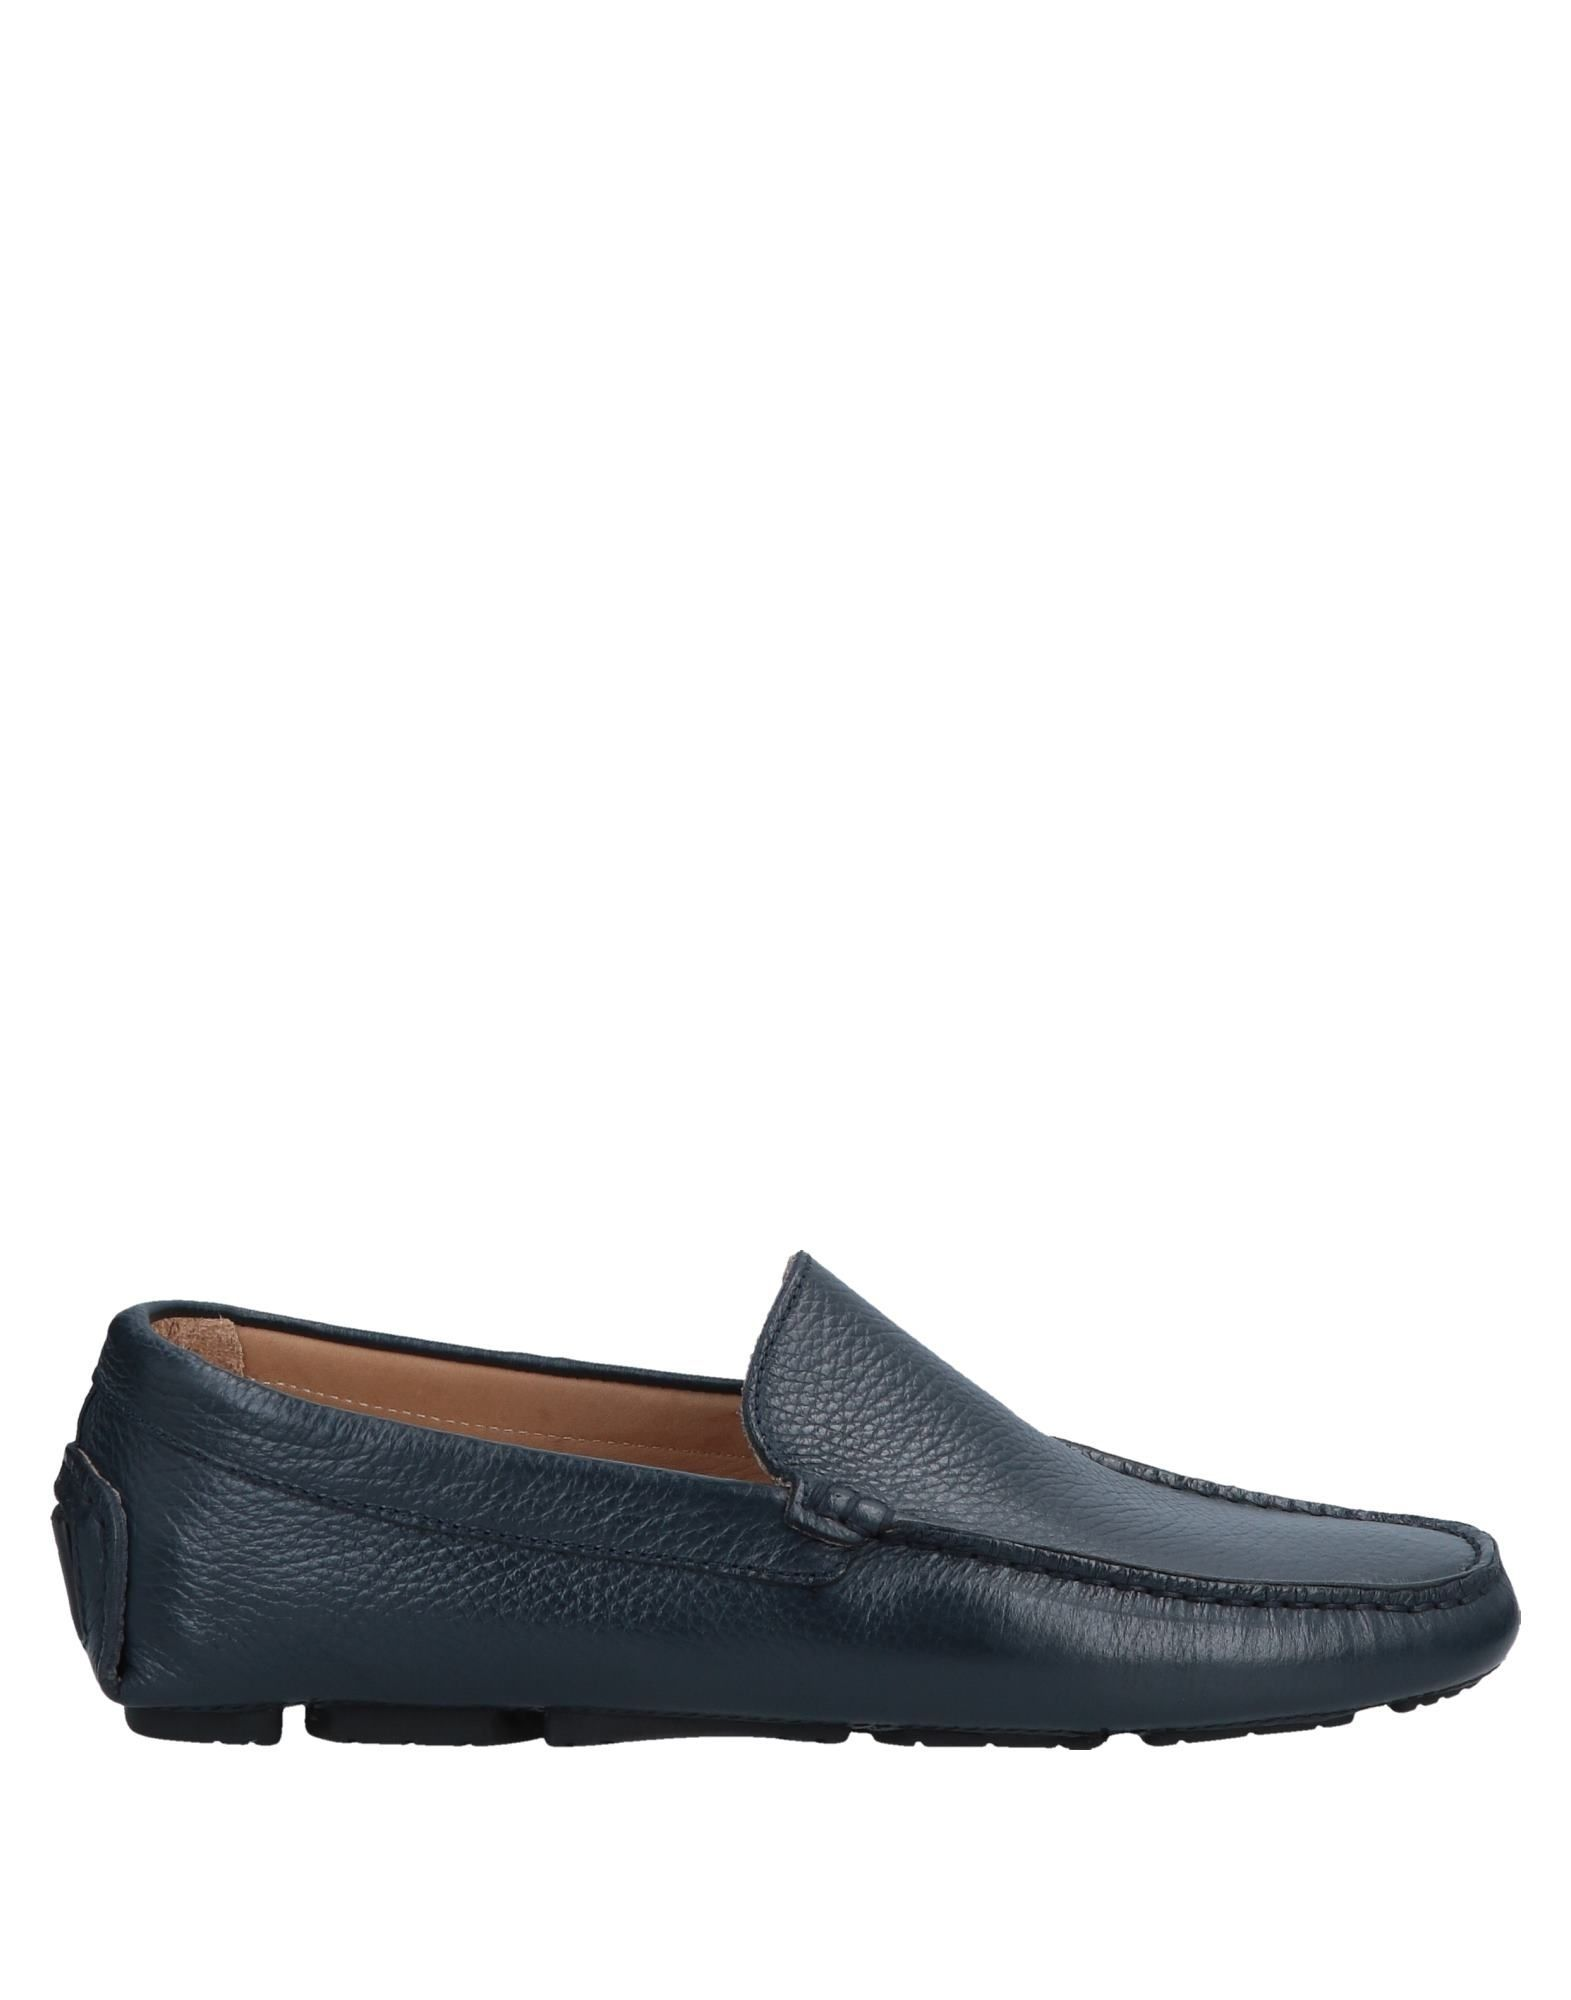 Doucal's Dark Blue Textured Leather Loafers